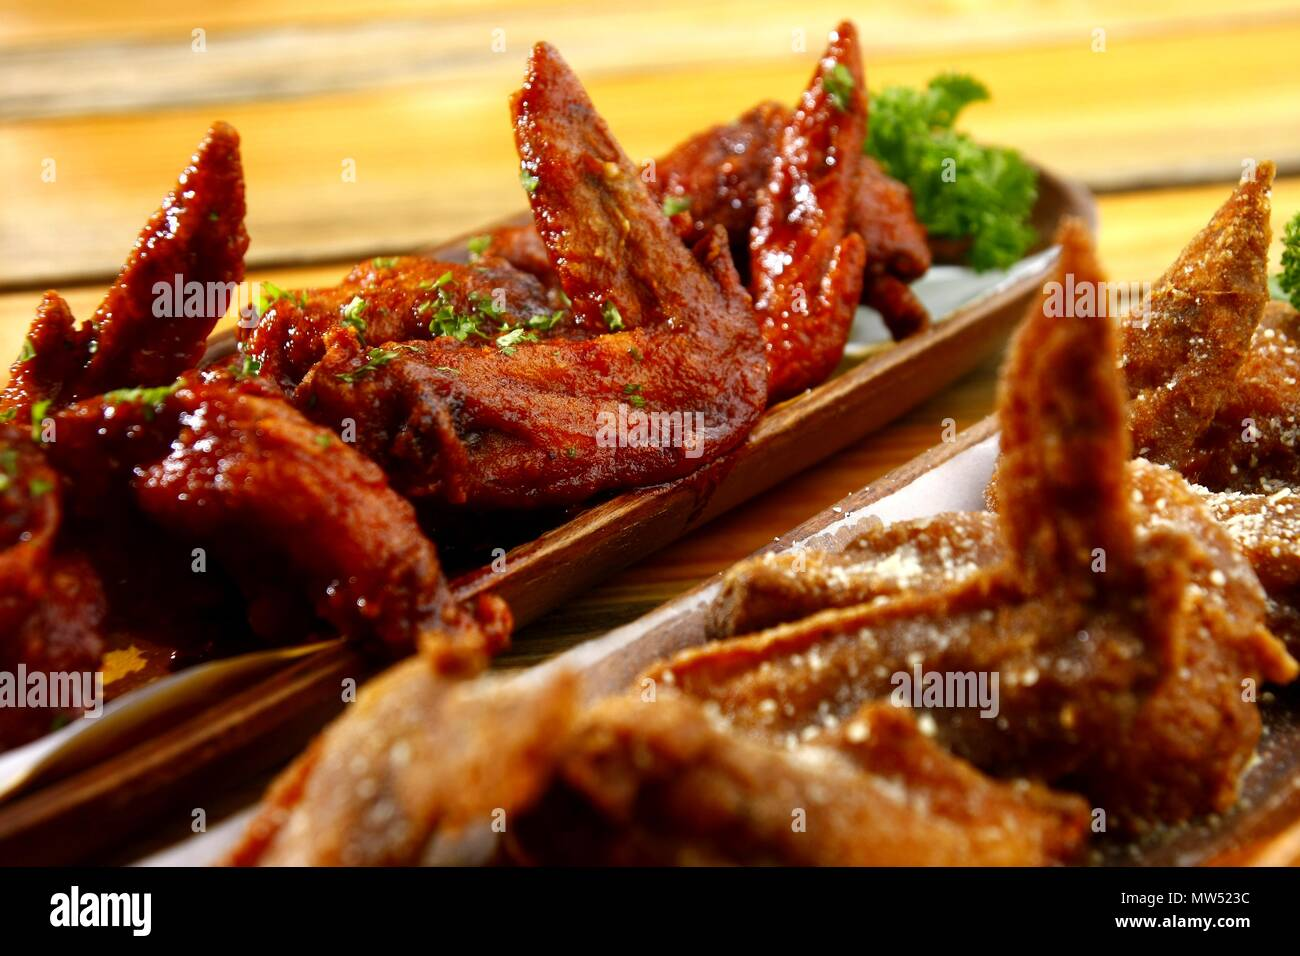 Photo of freshly cooked spicy and regular Buffalo wings - Stock Image